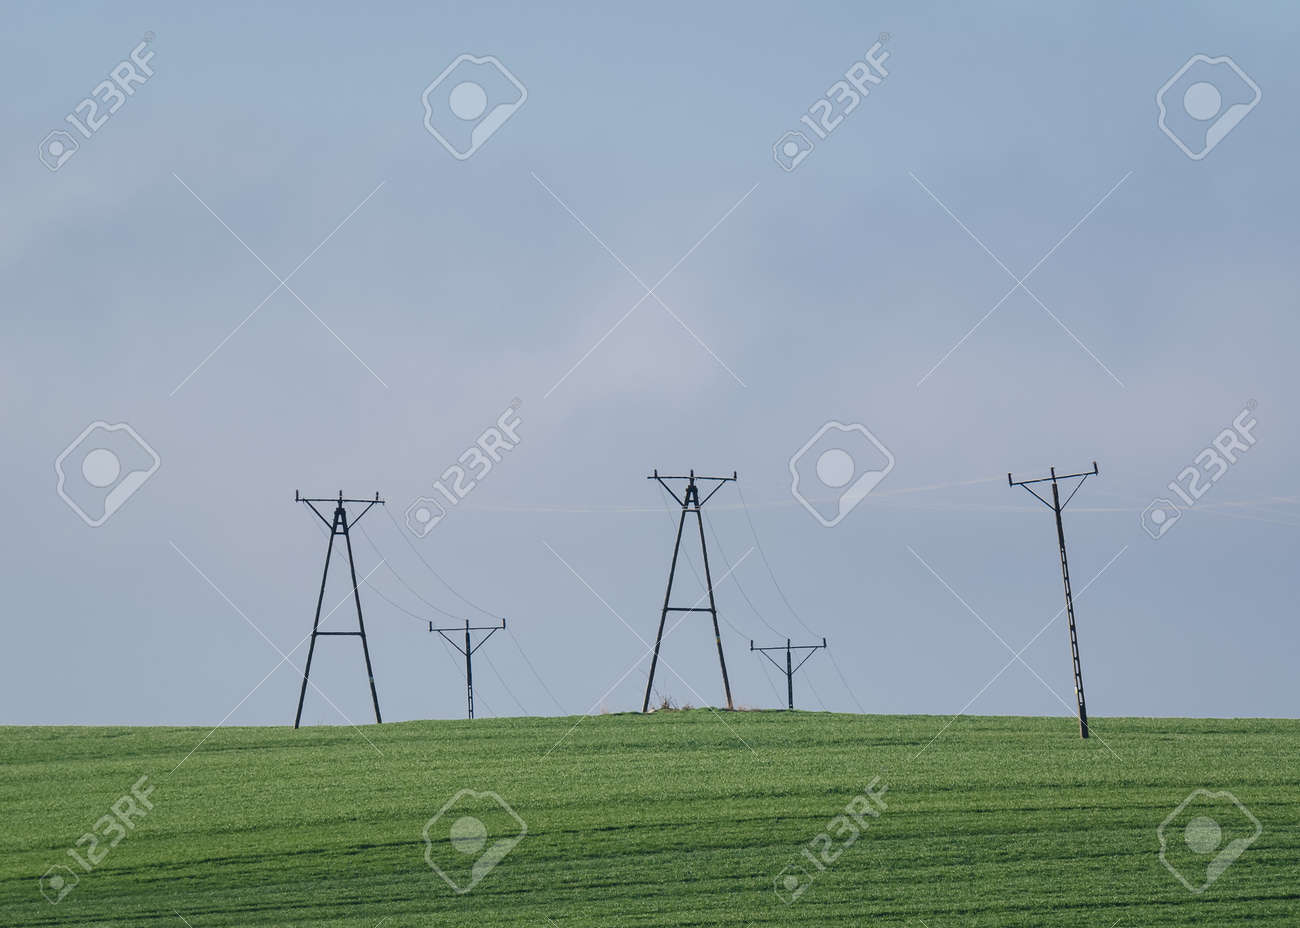 POWER ENGINEERING - High voltage power line in a green field - 169540990